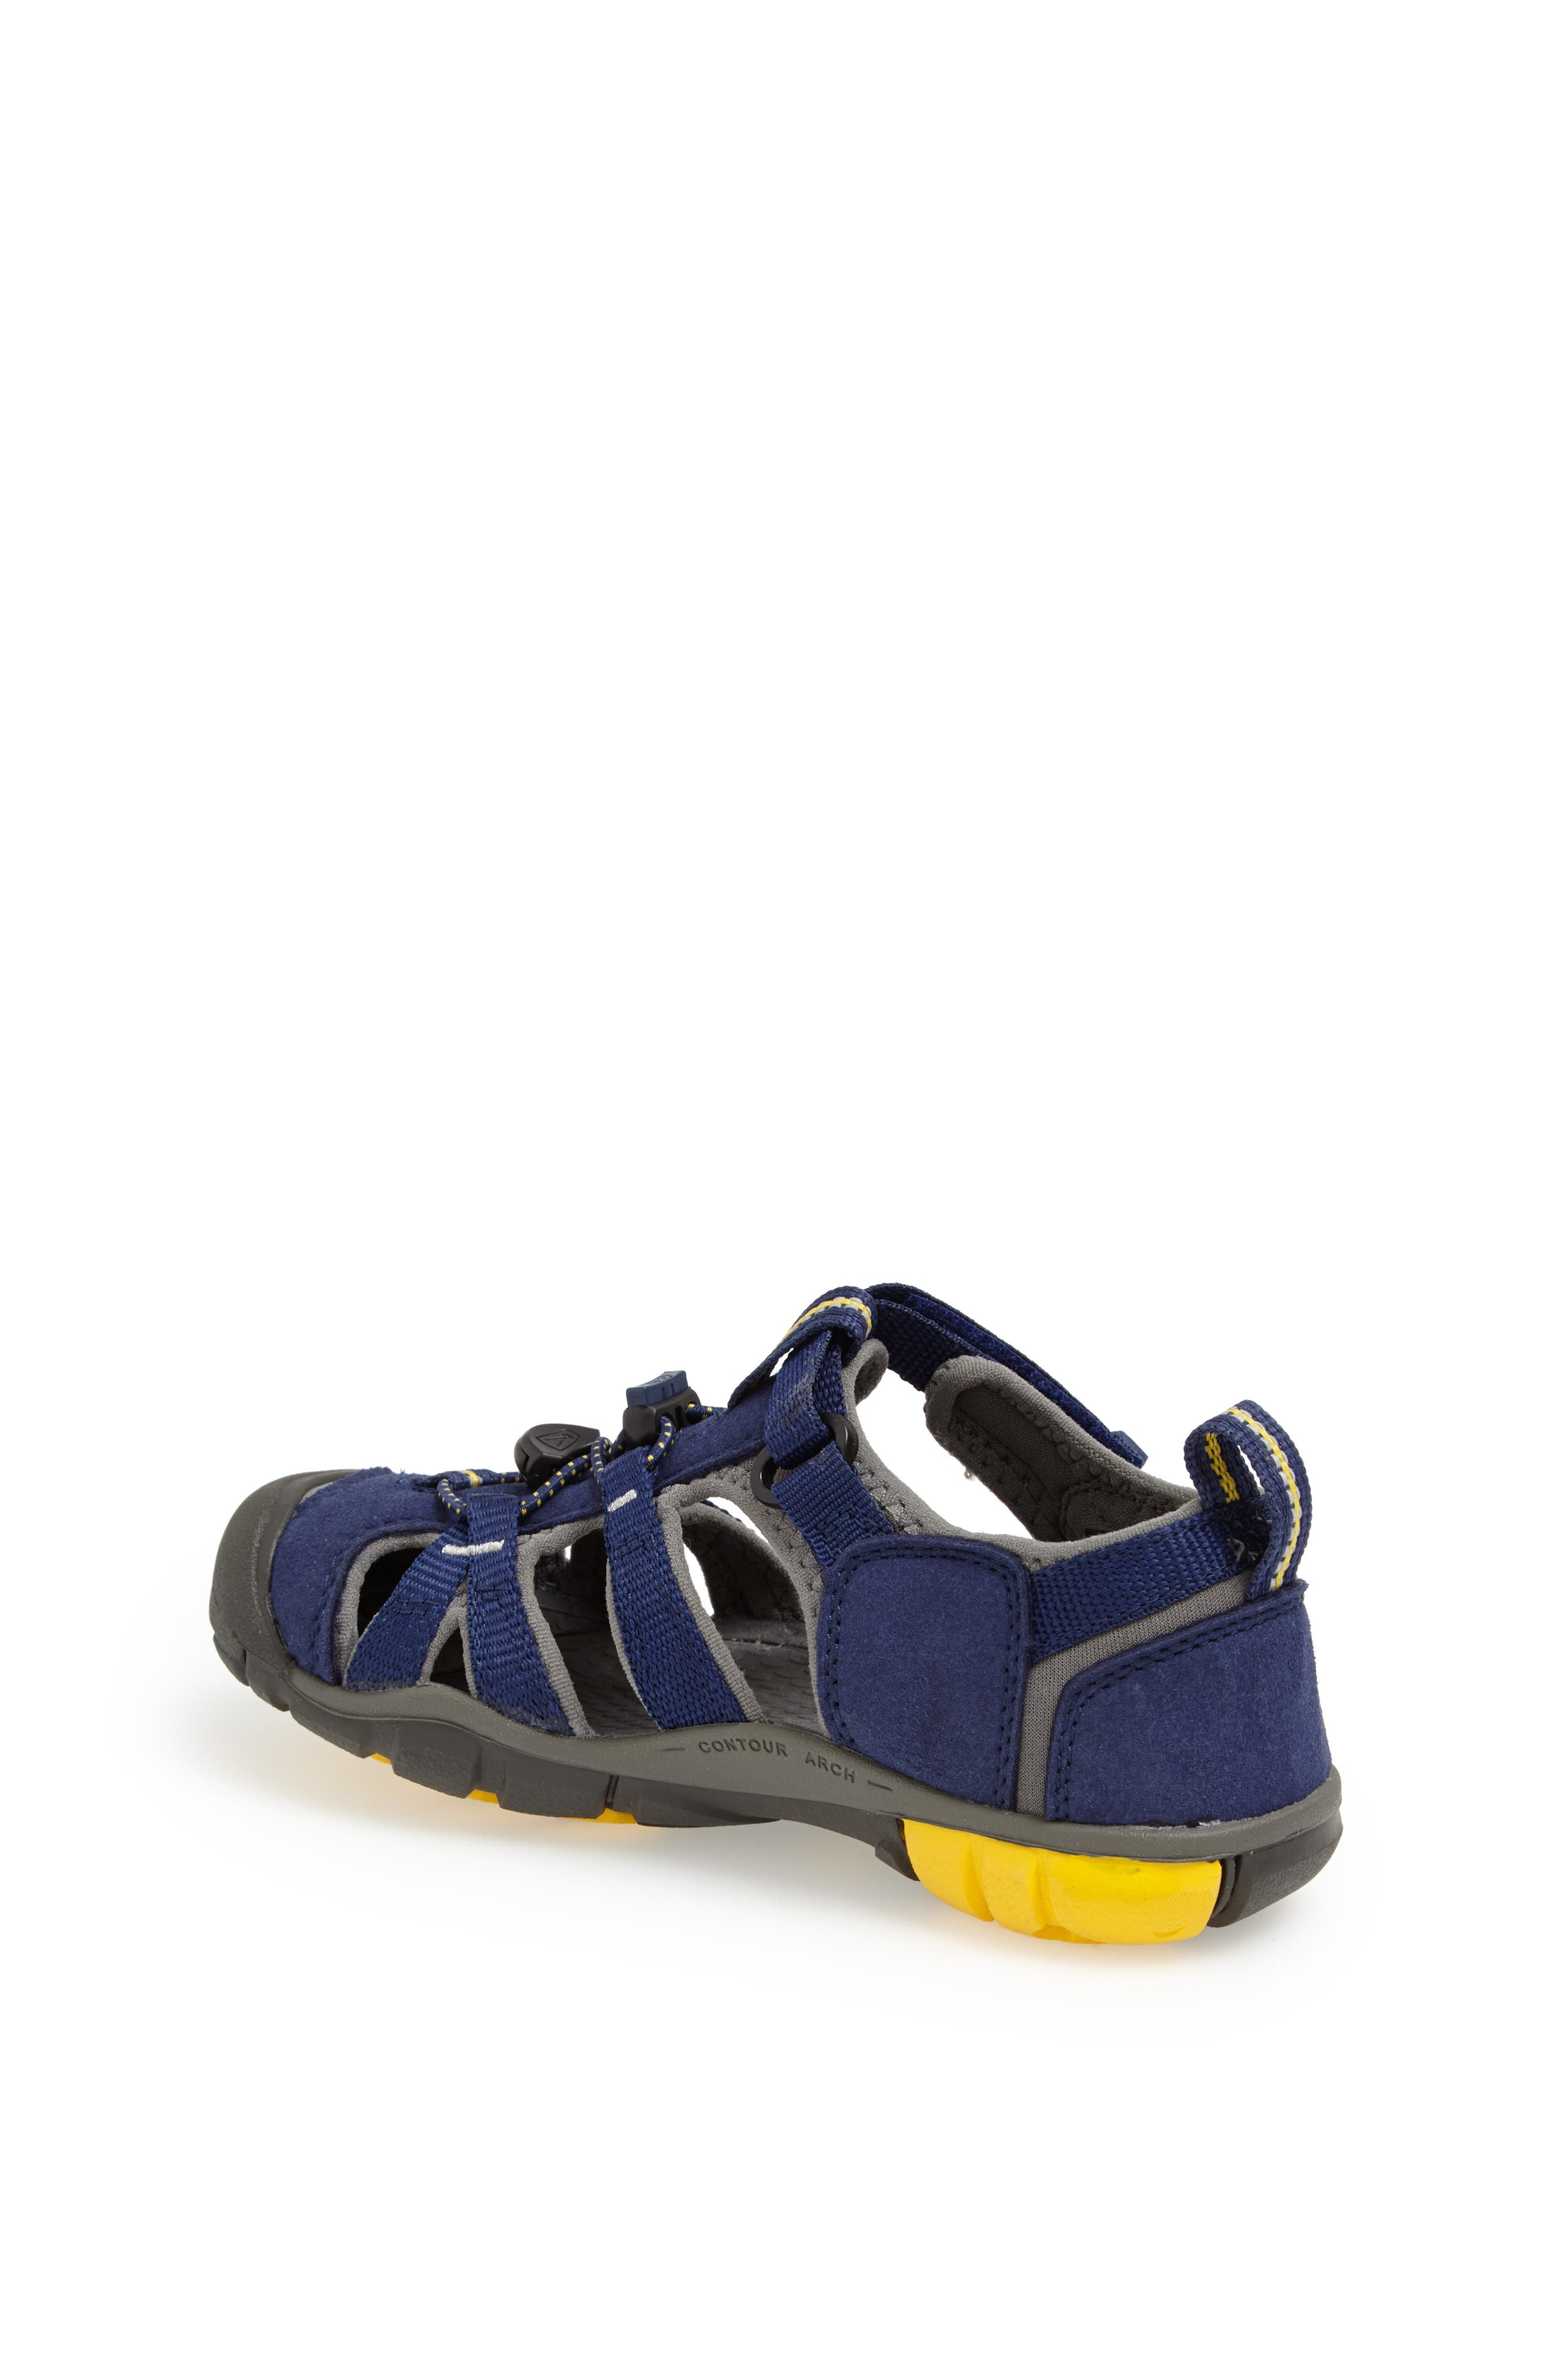 c2f9cc407c33 Keen Shoes for Kids Toddler (2-4 Years)